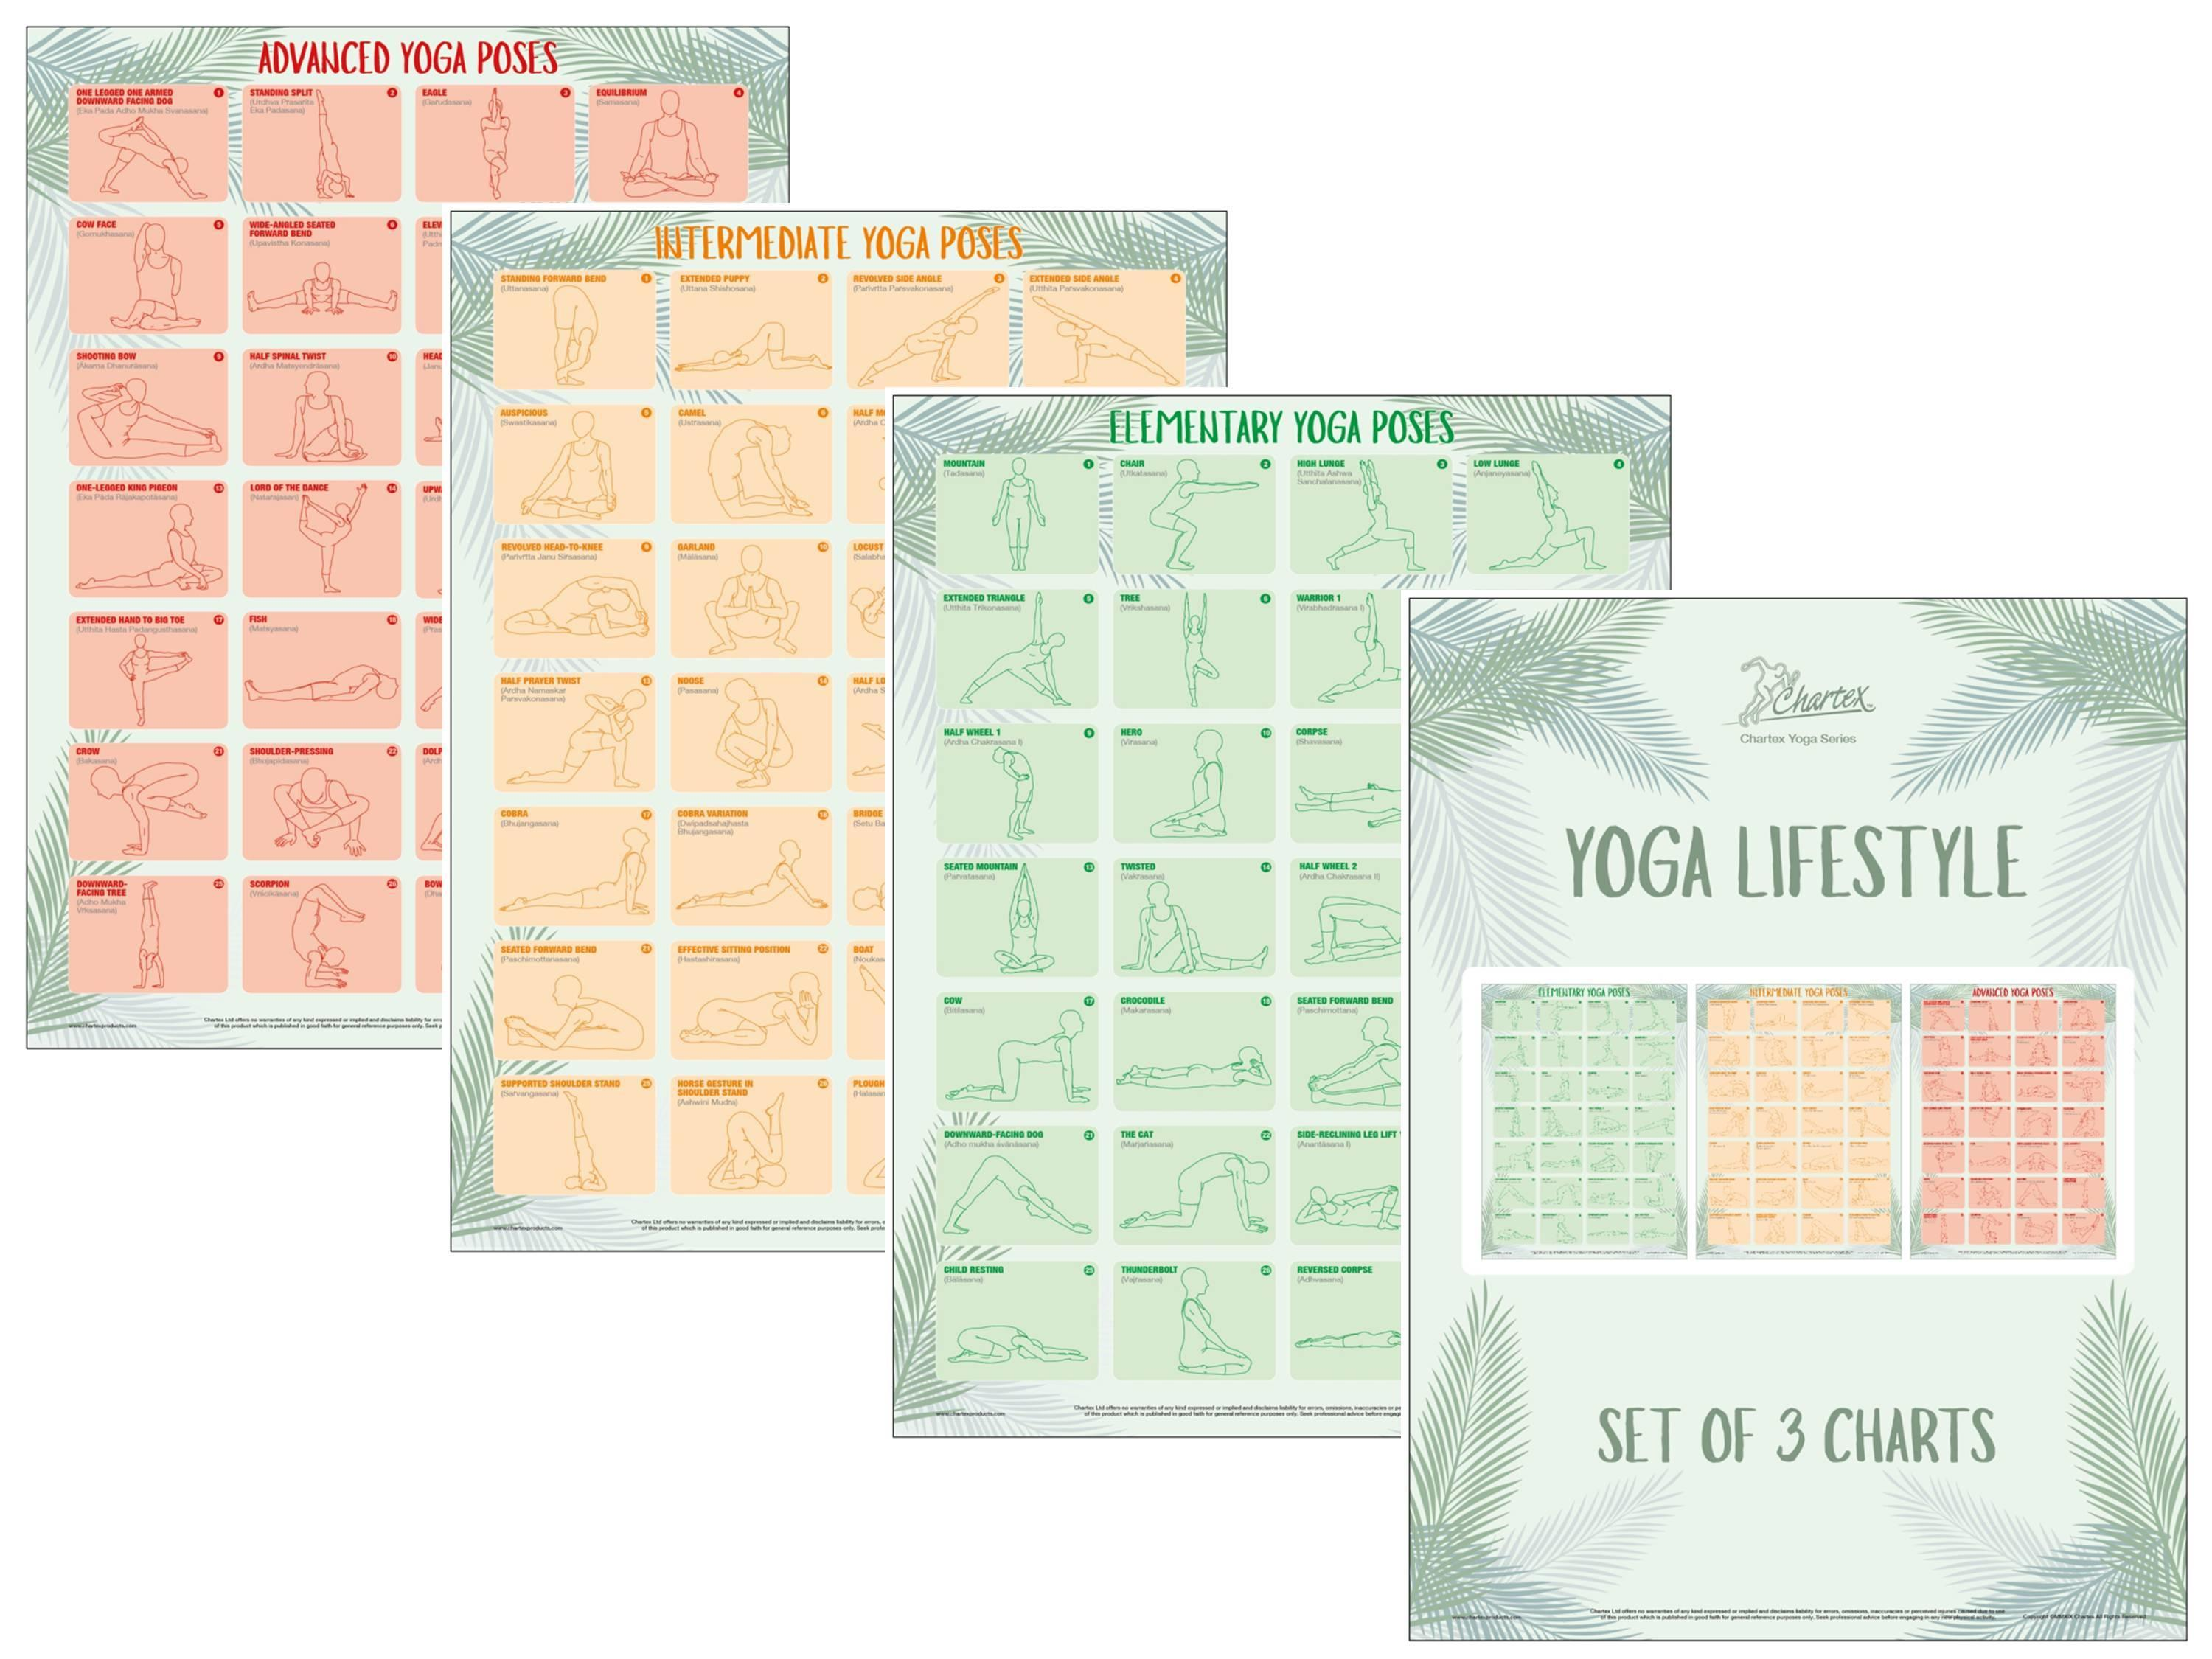 Yoga Poses And Exercises Set of 3 Instructional Charts